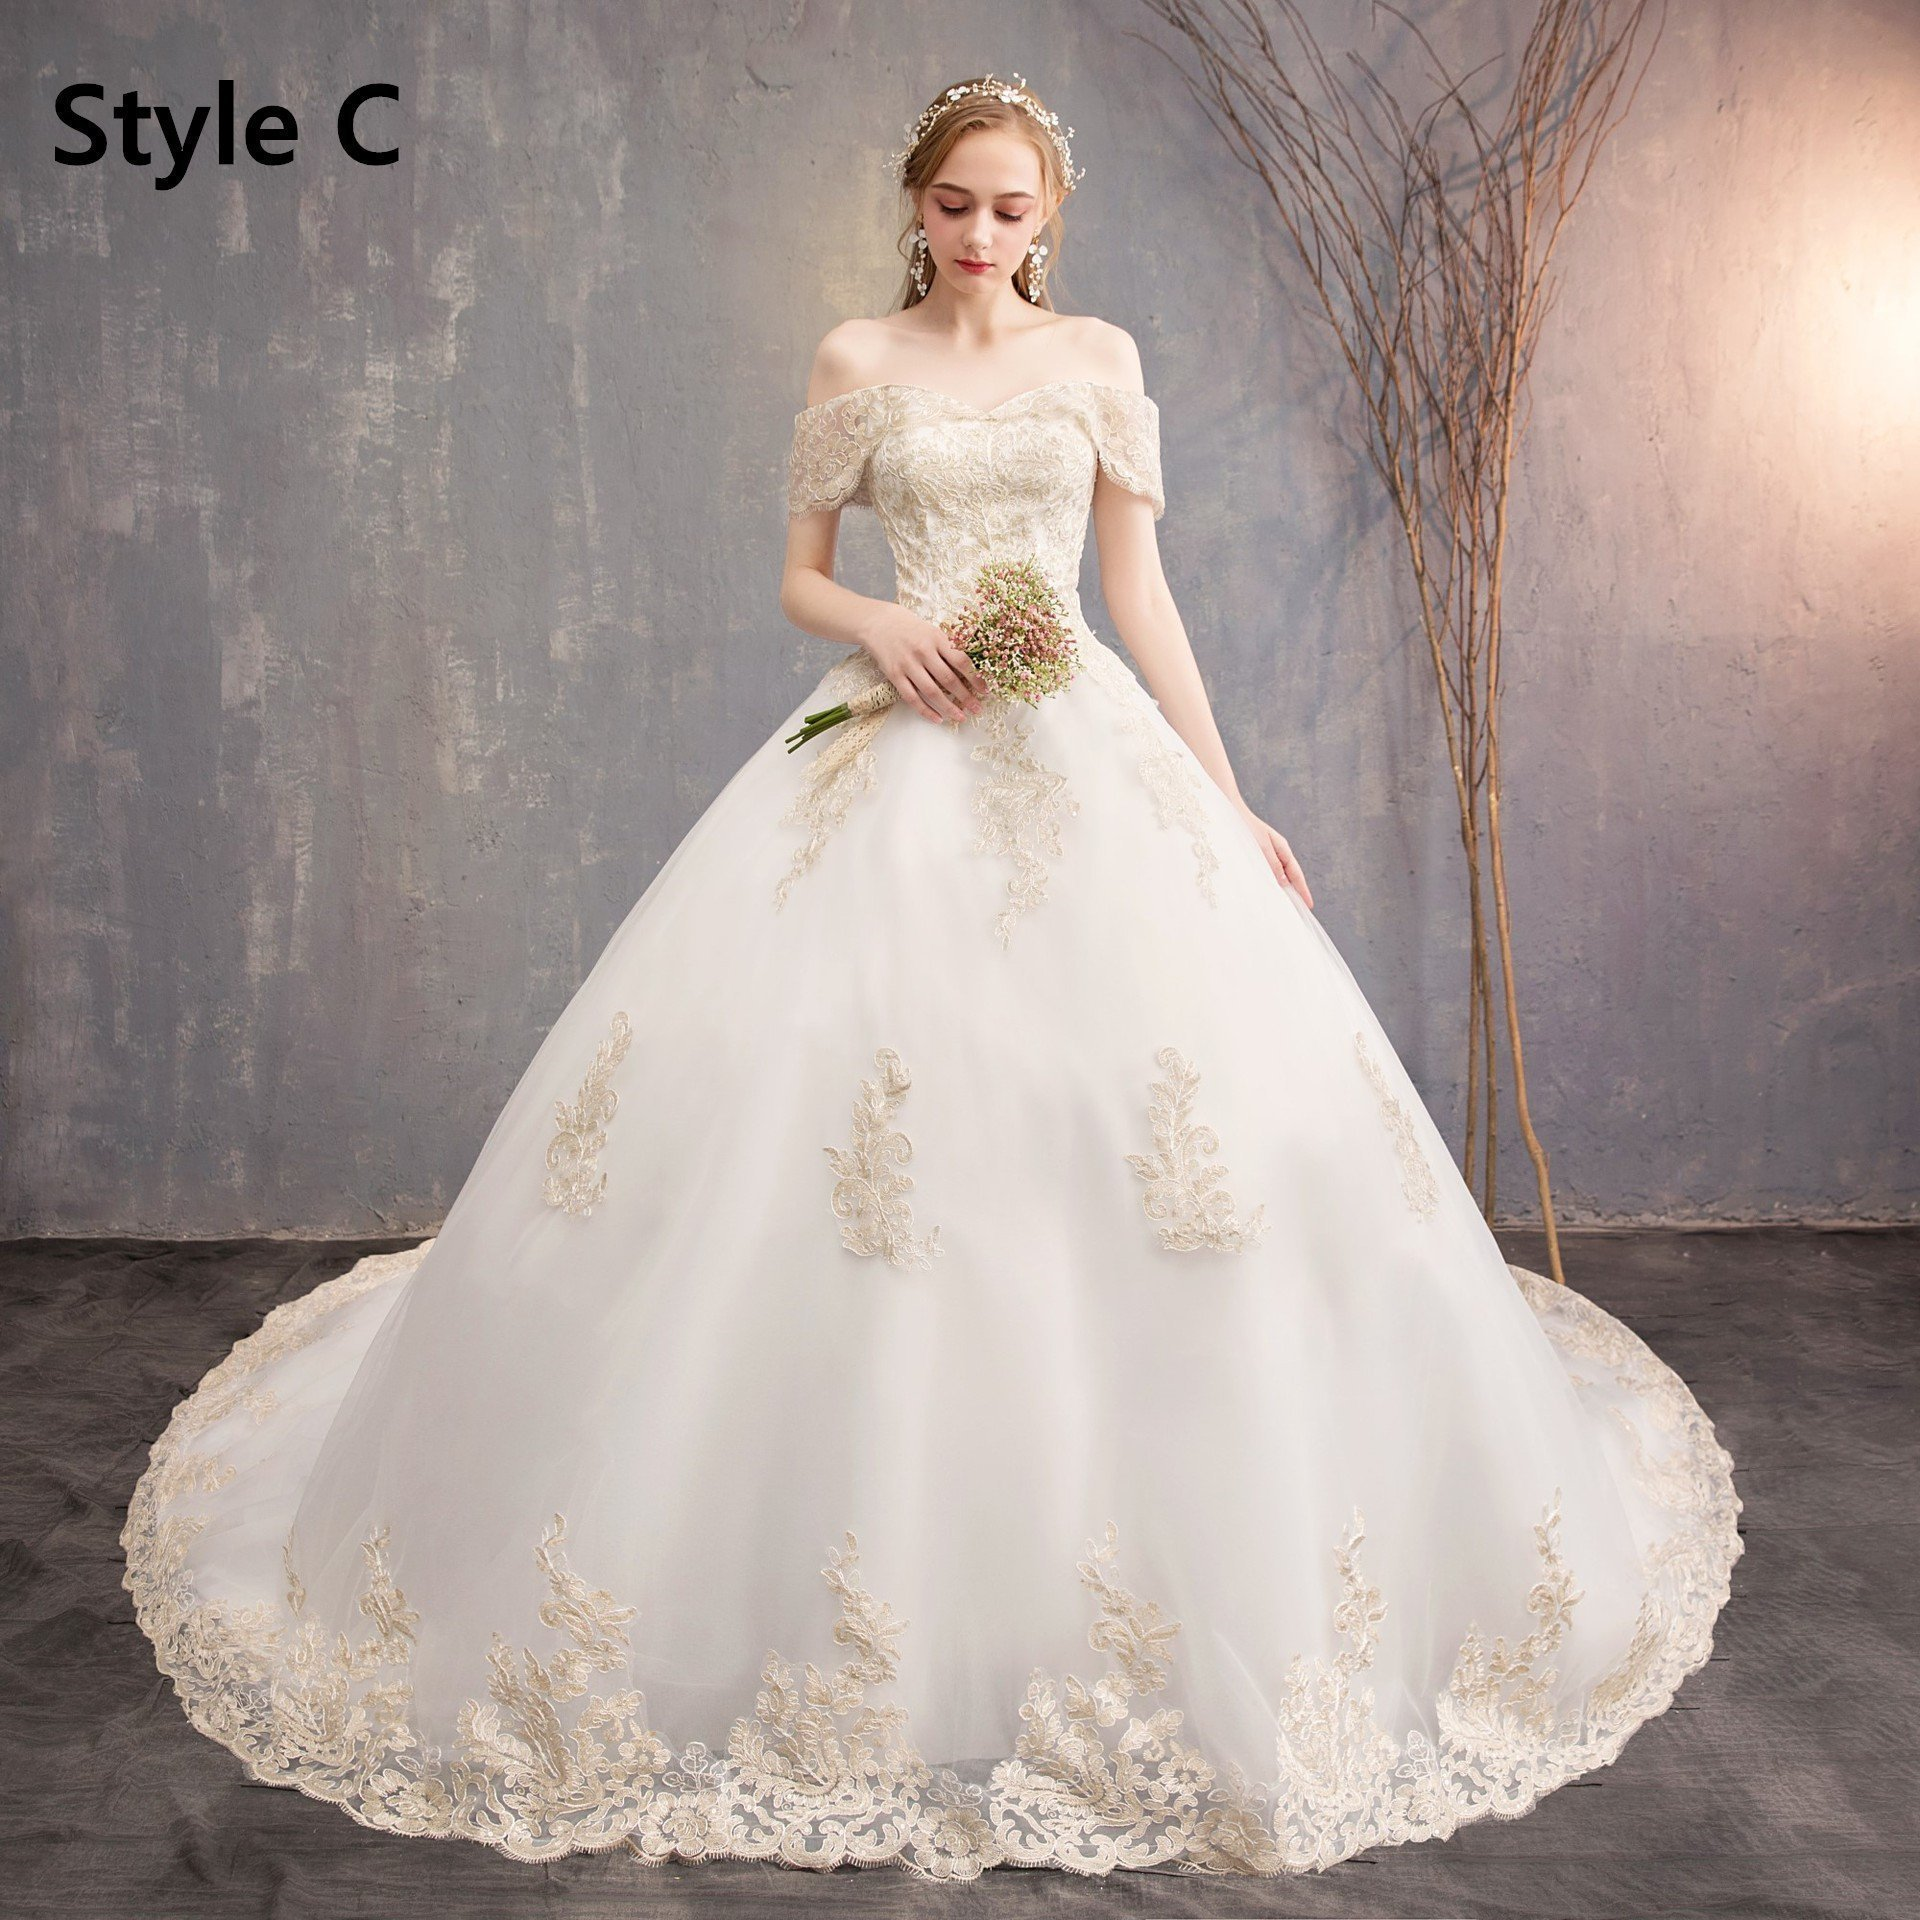 Best Wedding Dresses Lace Dresses Blue Floral Wedding Dress Wedding Ceremony Lace Styles For Teenage Girl Red Sweater Dress Sweetheart Mermaid Wedding Dress Ssbbw Wedding Dresses